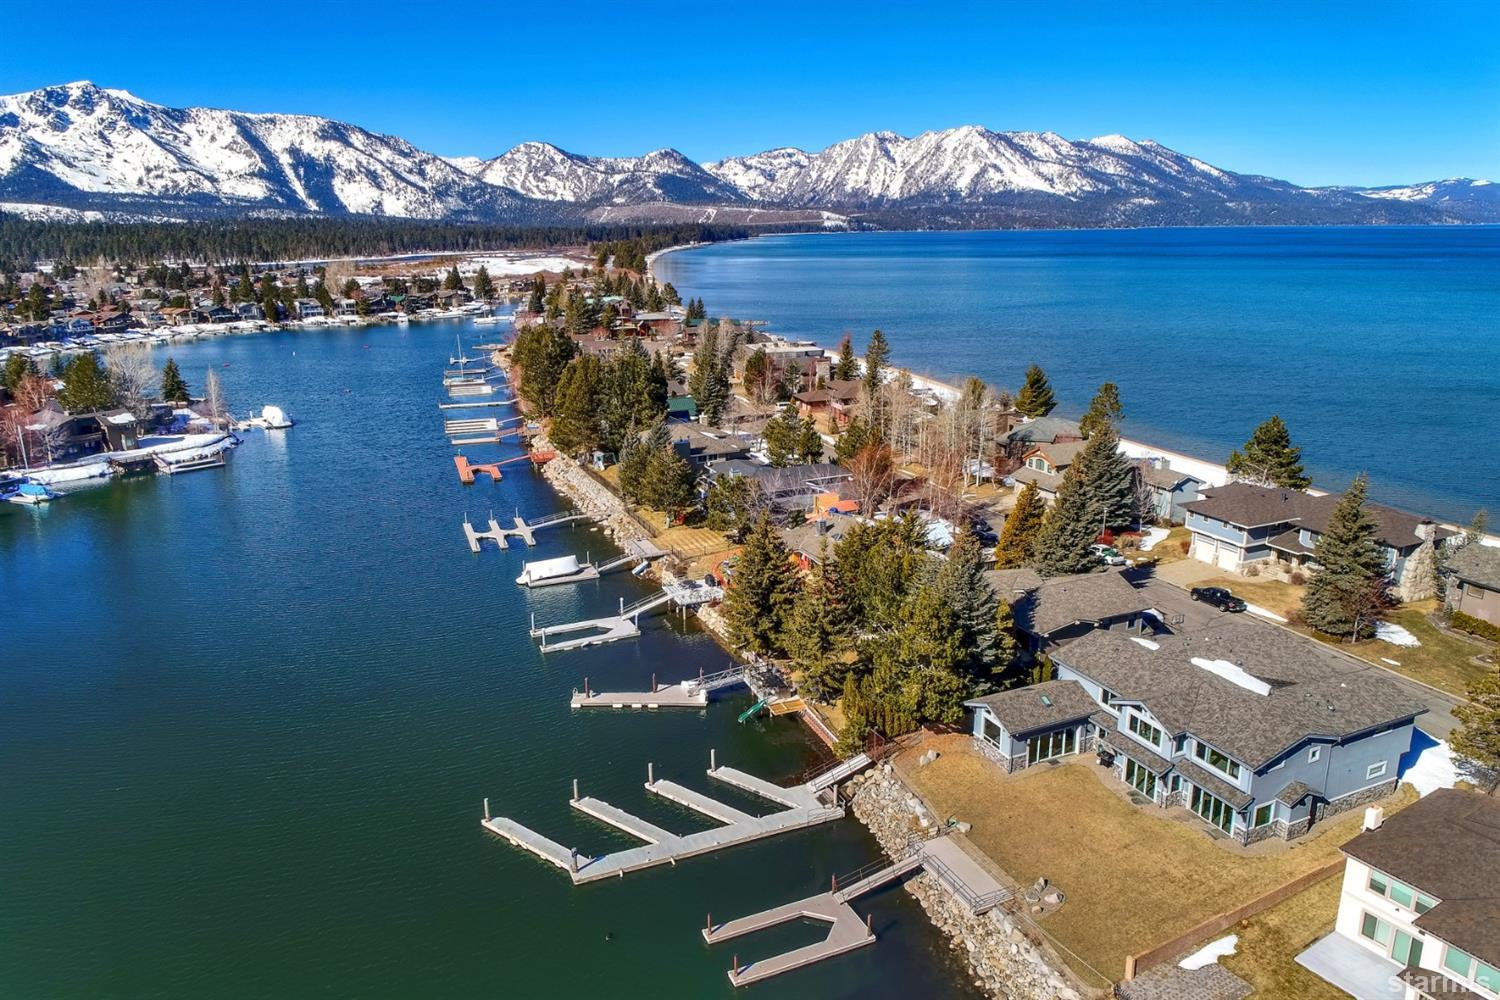 Image for 296 Beach Drive, South Lake Tahoe, CA 96150